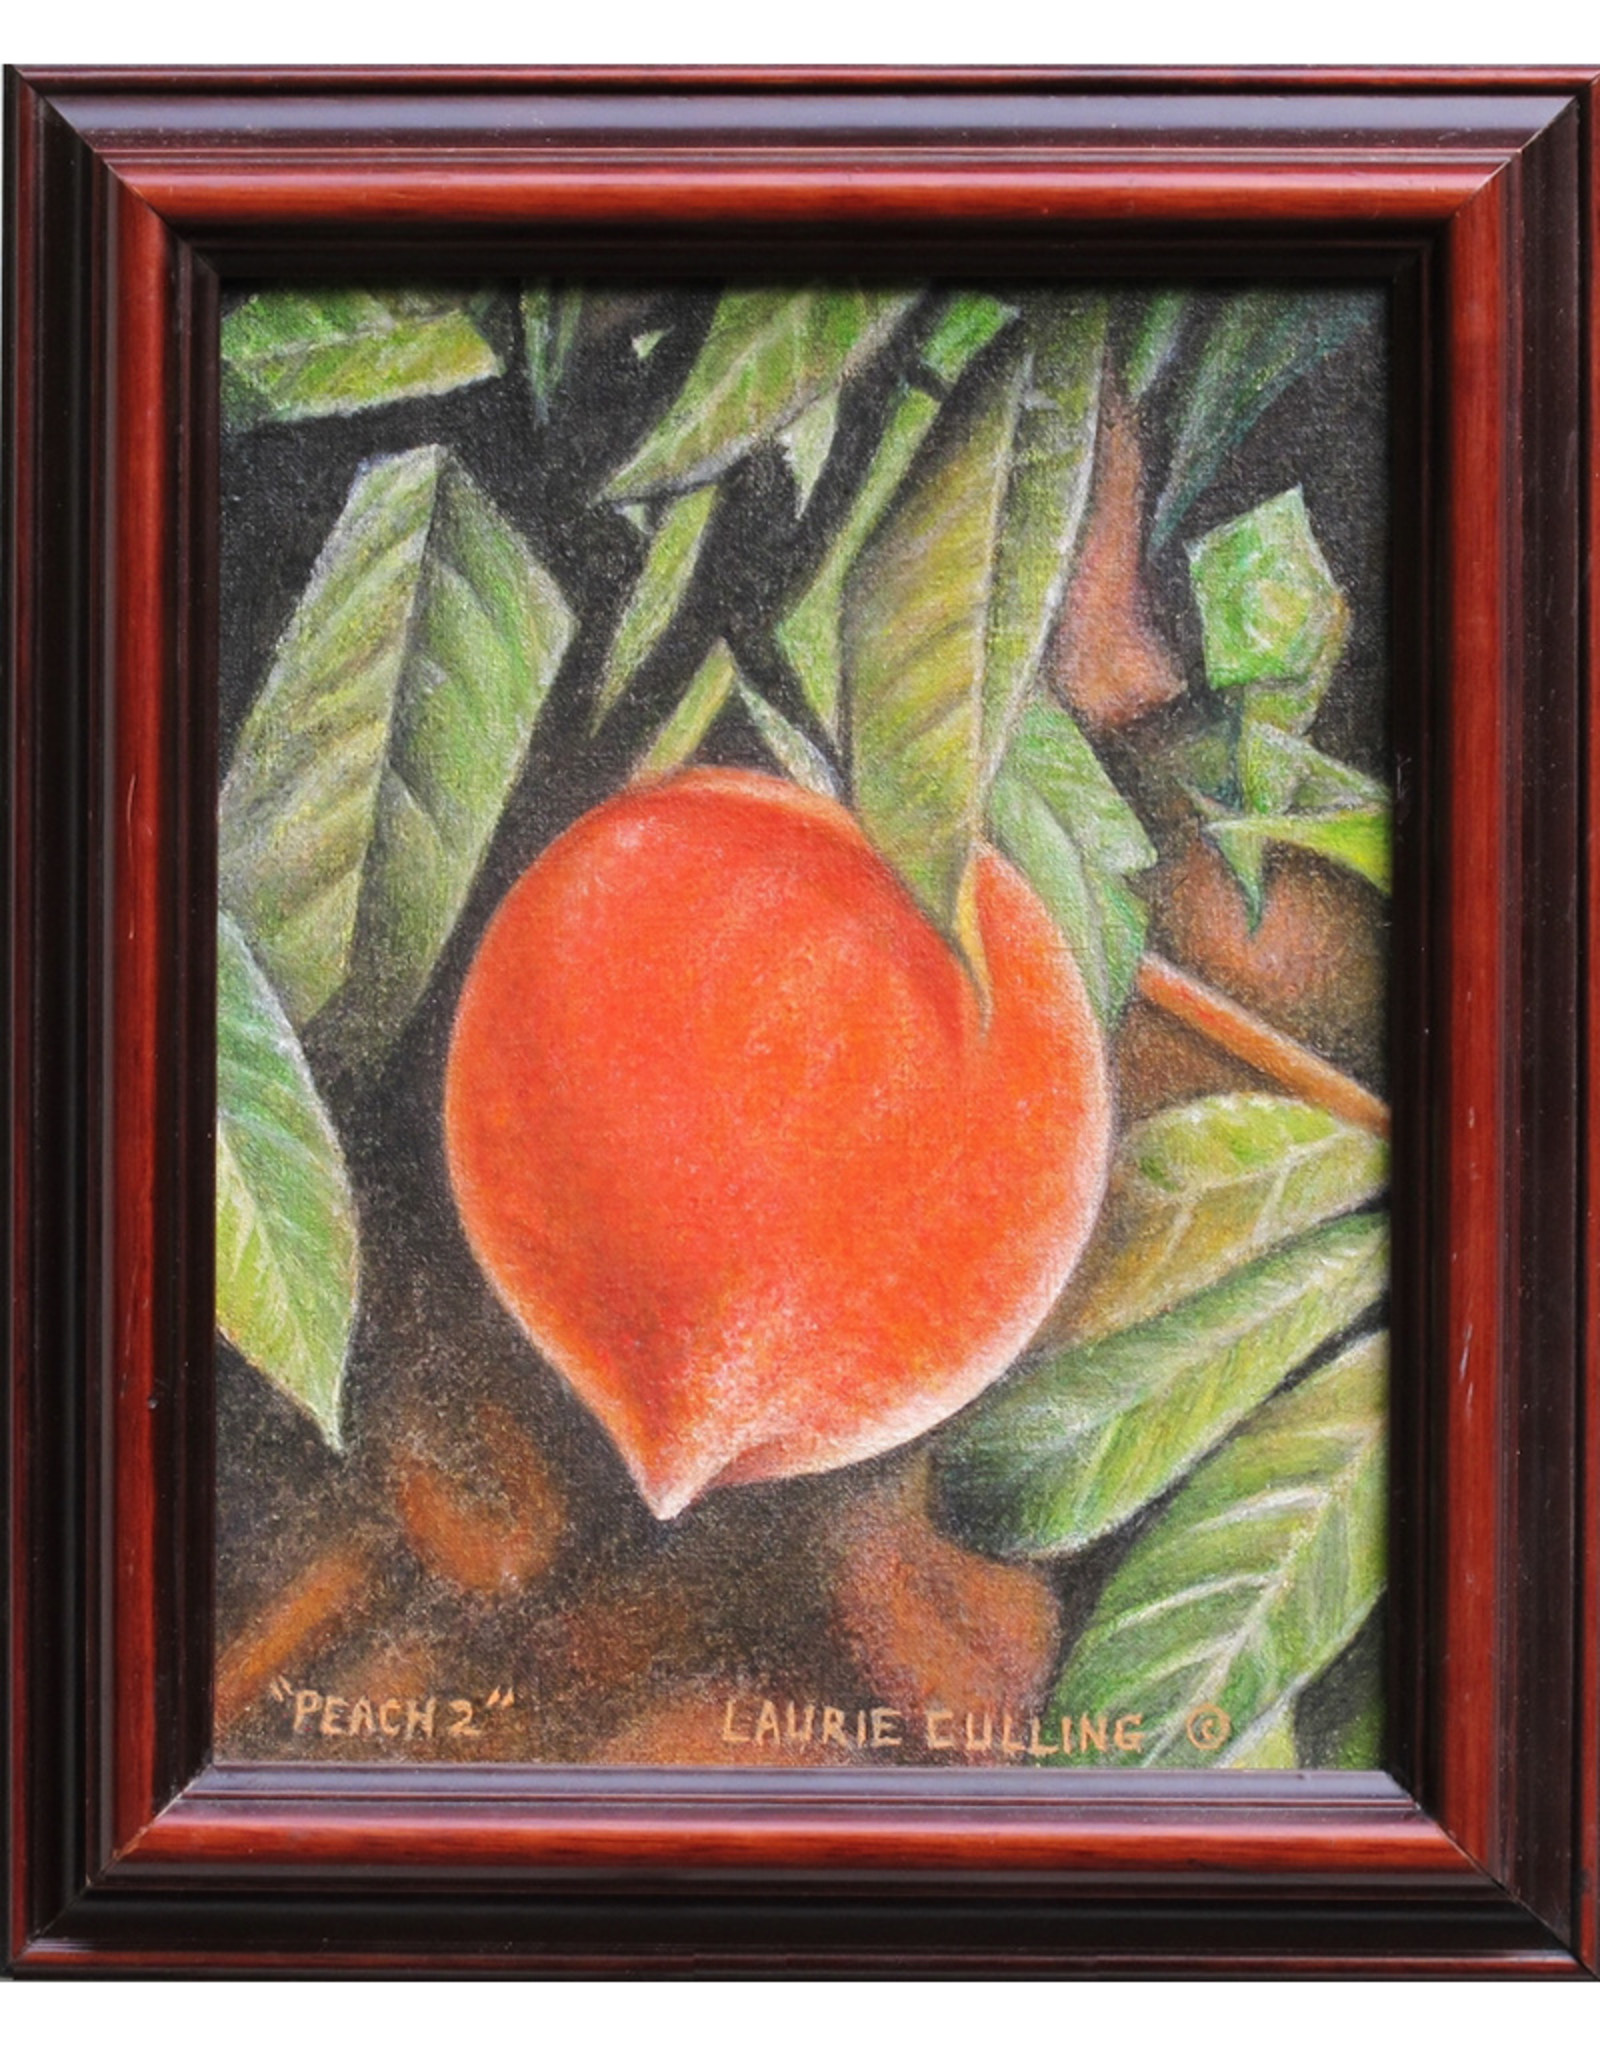 Laurie Culling Peach 2 by Laurie Culling